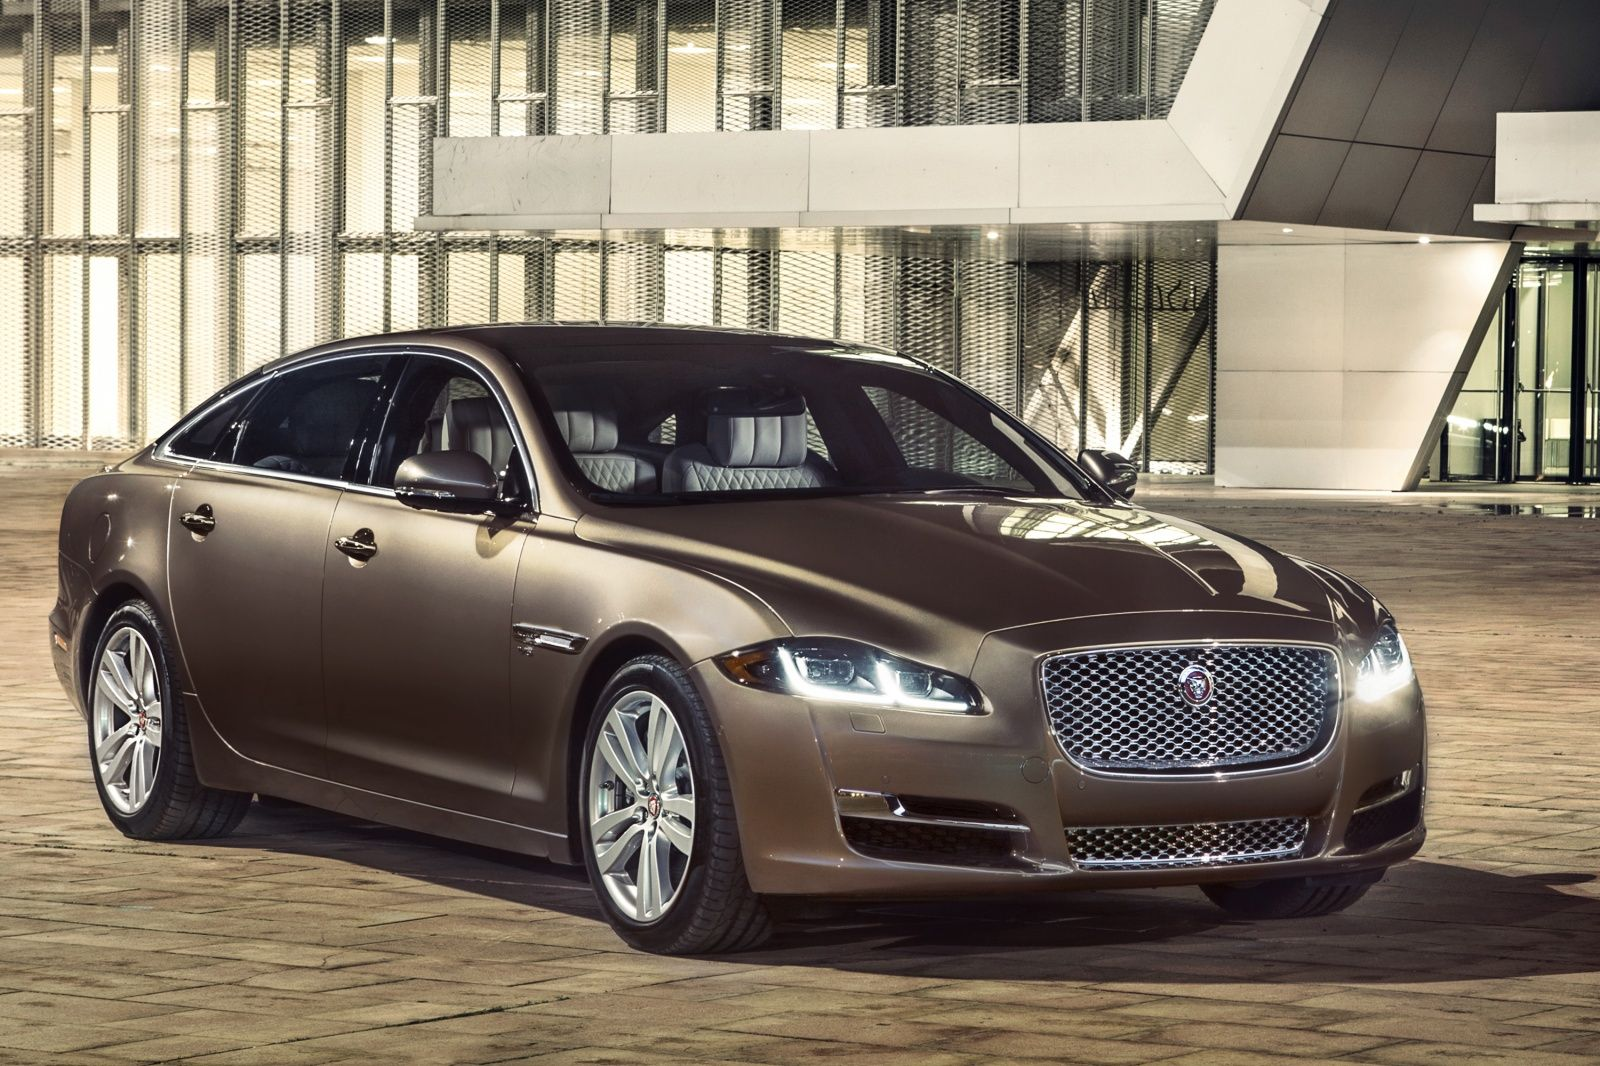 2016 Jaguar Xj Is More Desirable Than Ever Jaguar Xj Jaguar Car